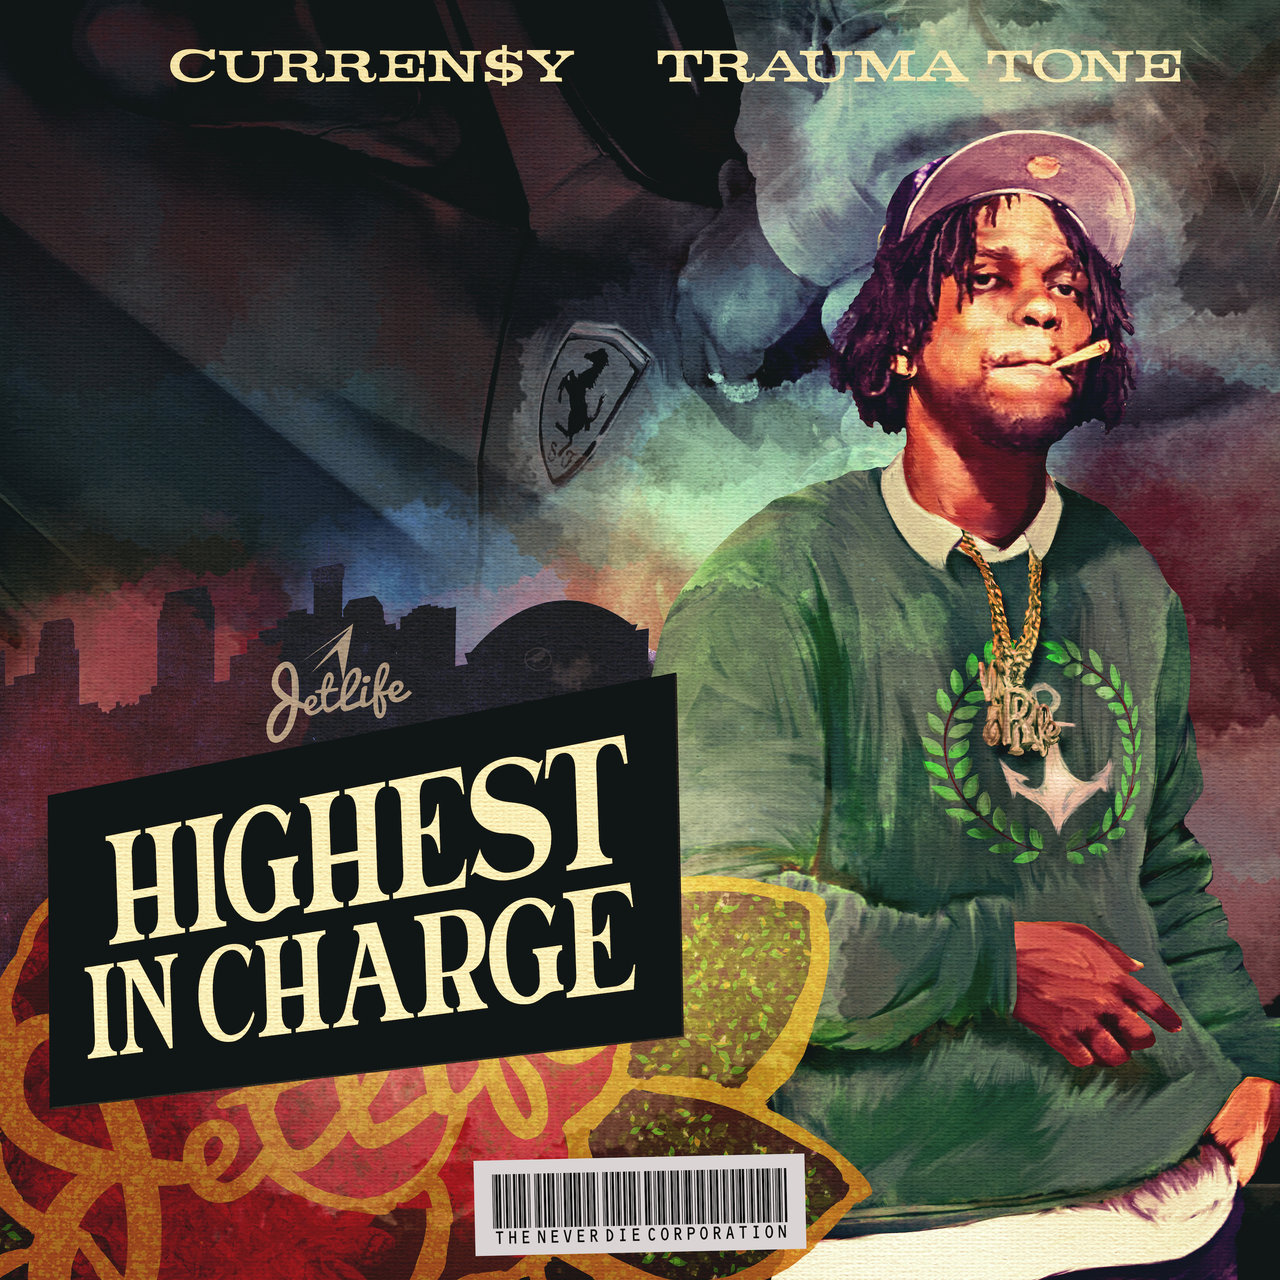 Currensy 'Highest in Charge' Album